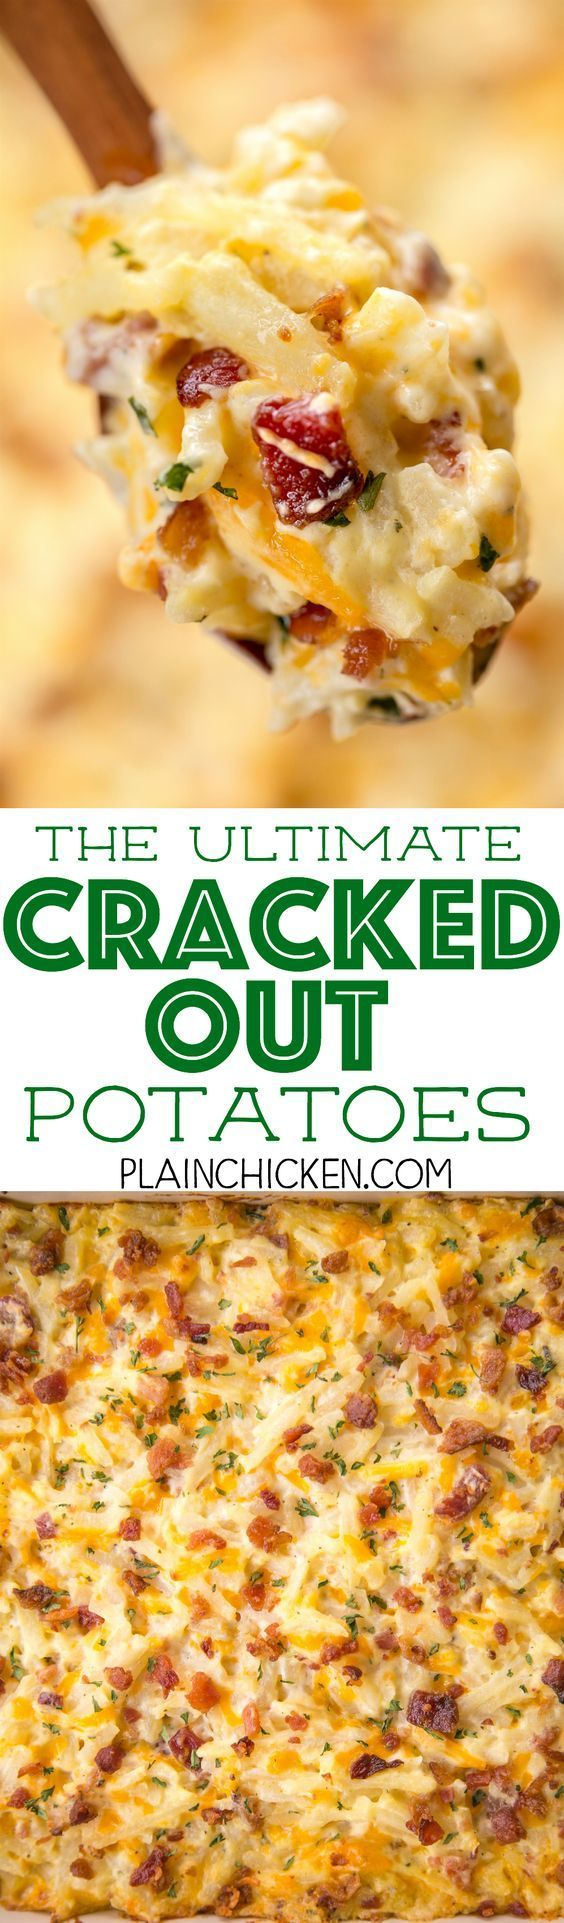 THE ULTIMATE Cracked Out Potatoes - cheddar, bacon and ranch. SO addictive!! I could make a meal out of this potato casserole!! Cheddar, bacon, ranch, cream of chicken soup. sour cream, frozen shredded hash browns. Can freeze for later. We usually bake half and freeze half for later. SO GOOD!